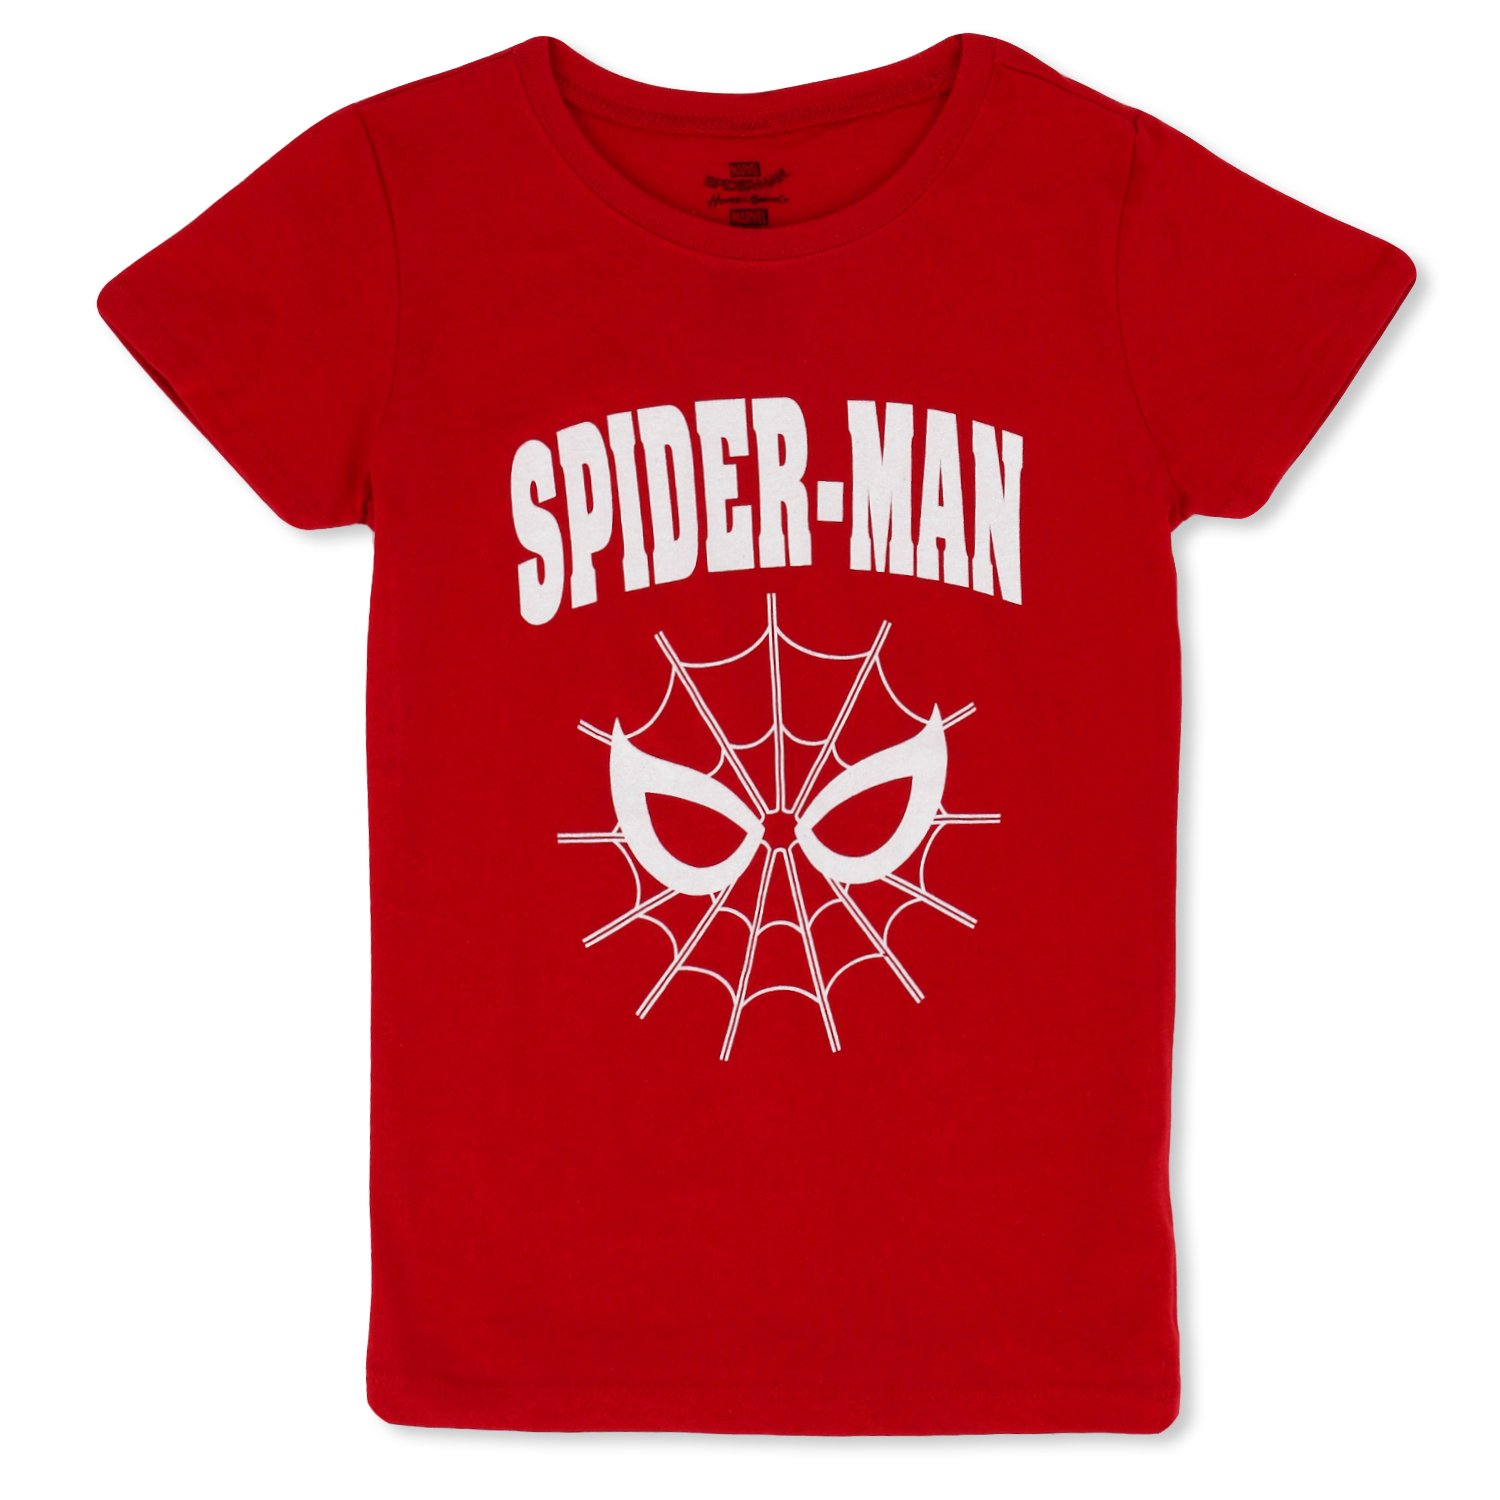 7aff11a32 Choose from prints of beloved heroes such as the Amazing Spider-Man, Groot,  or even the Avengers girls tees.